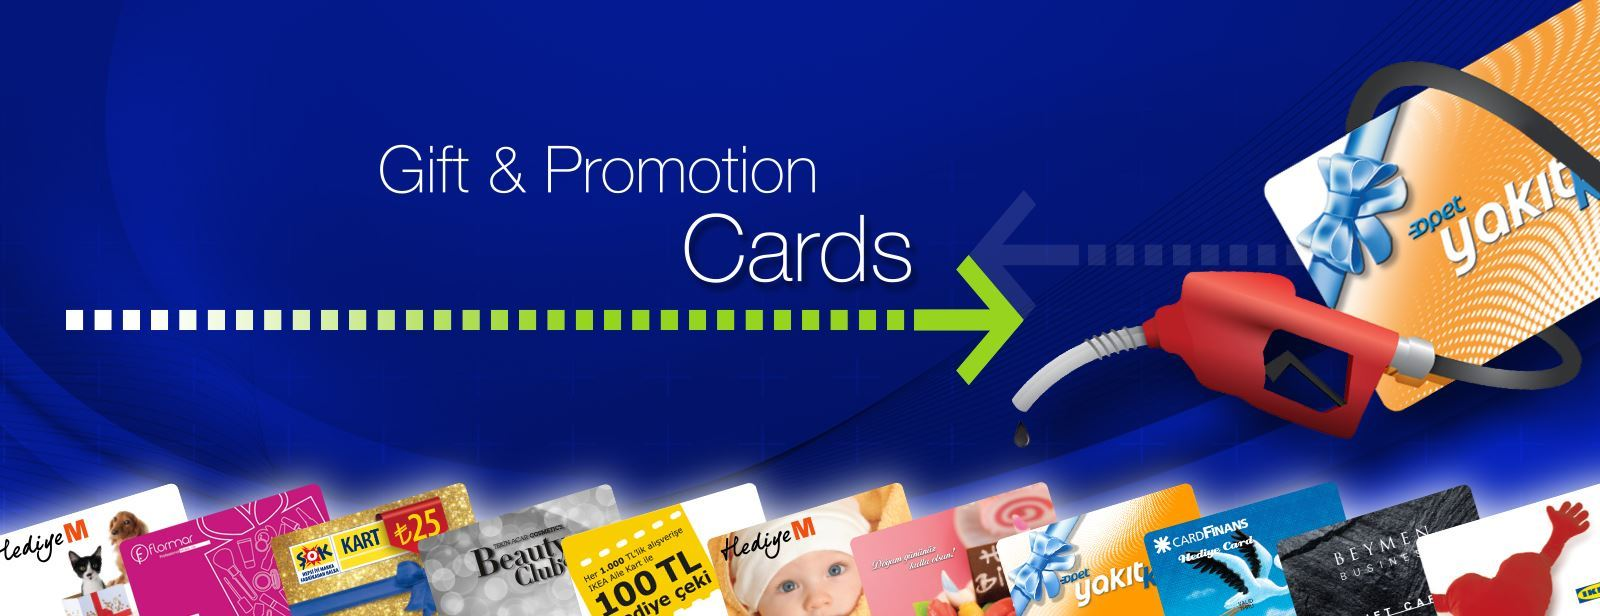 Gift & Promotion Cards